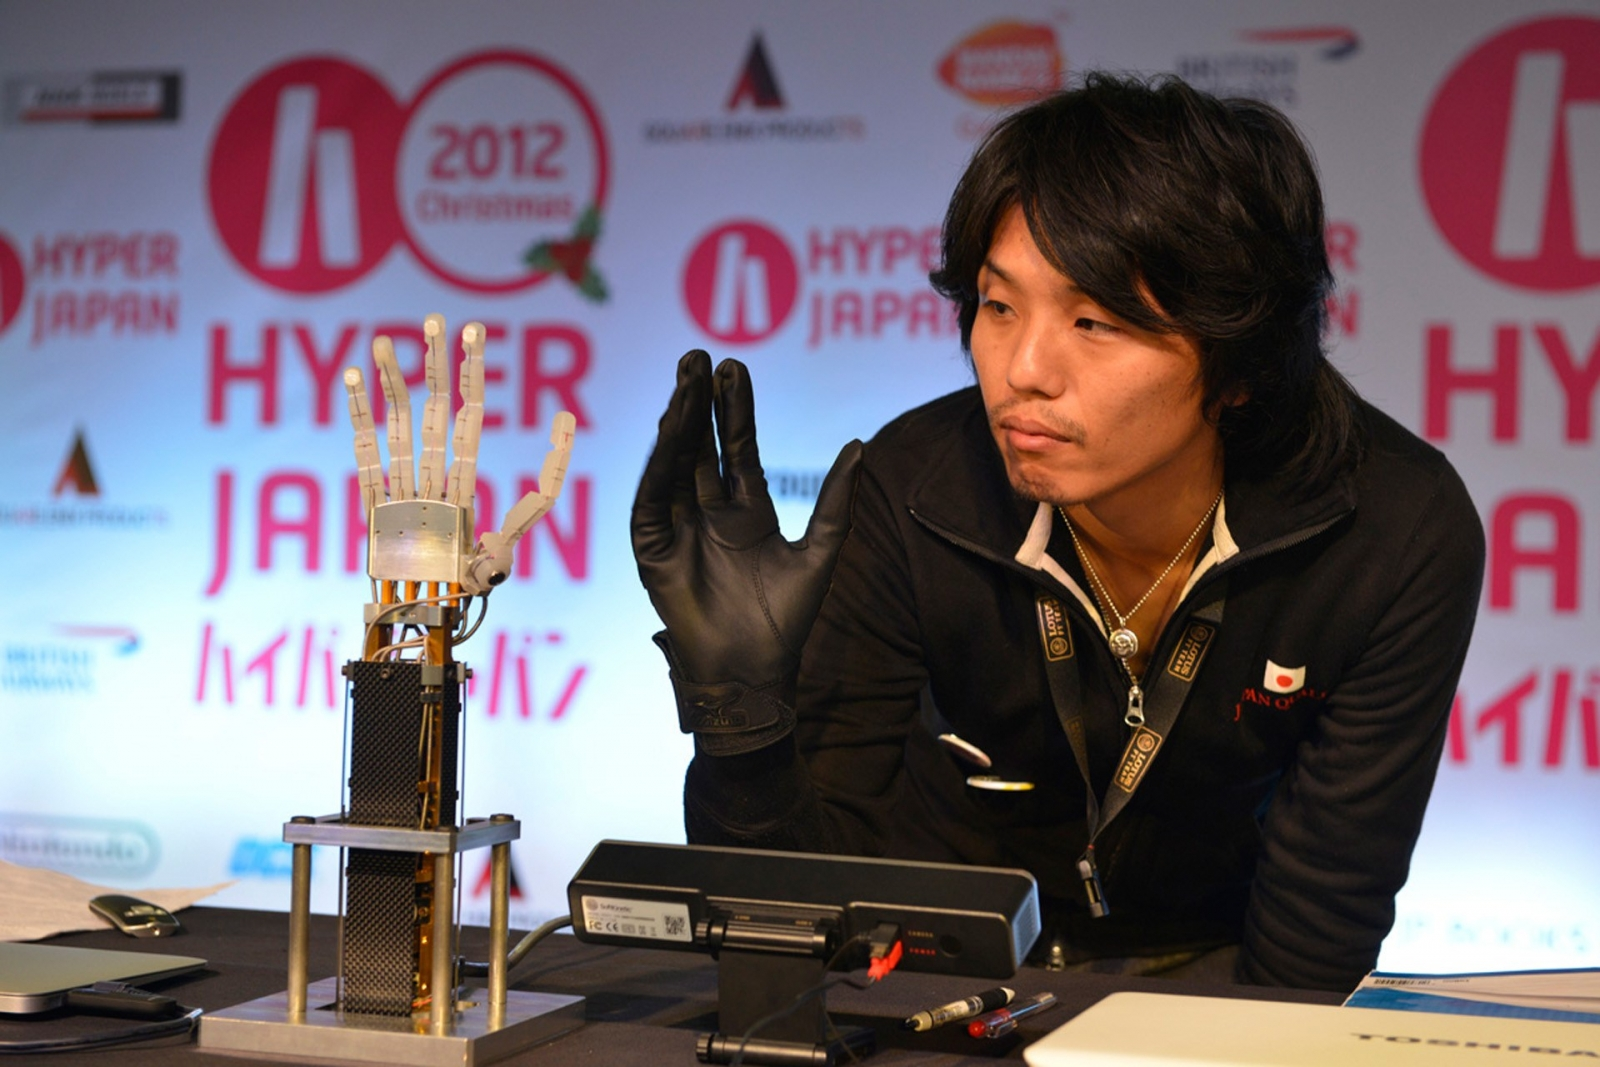 Handroid – The Advanced Robot Hand That Could One Day Be Used by Amputees